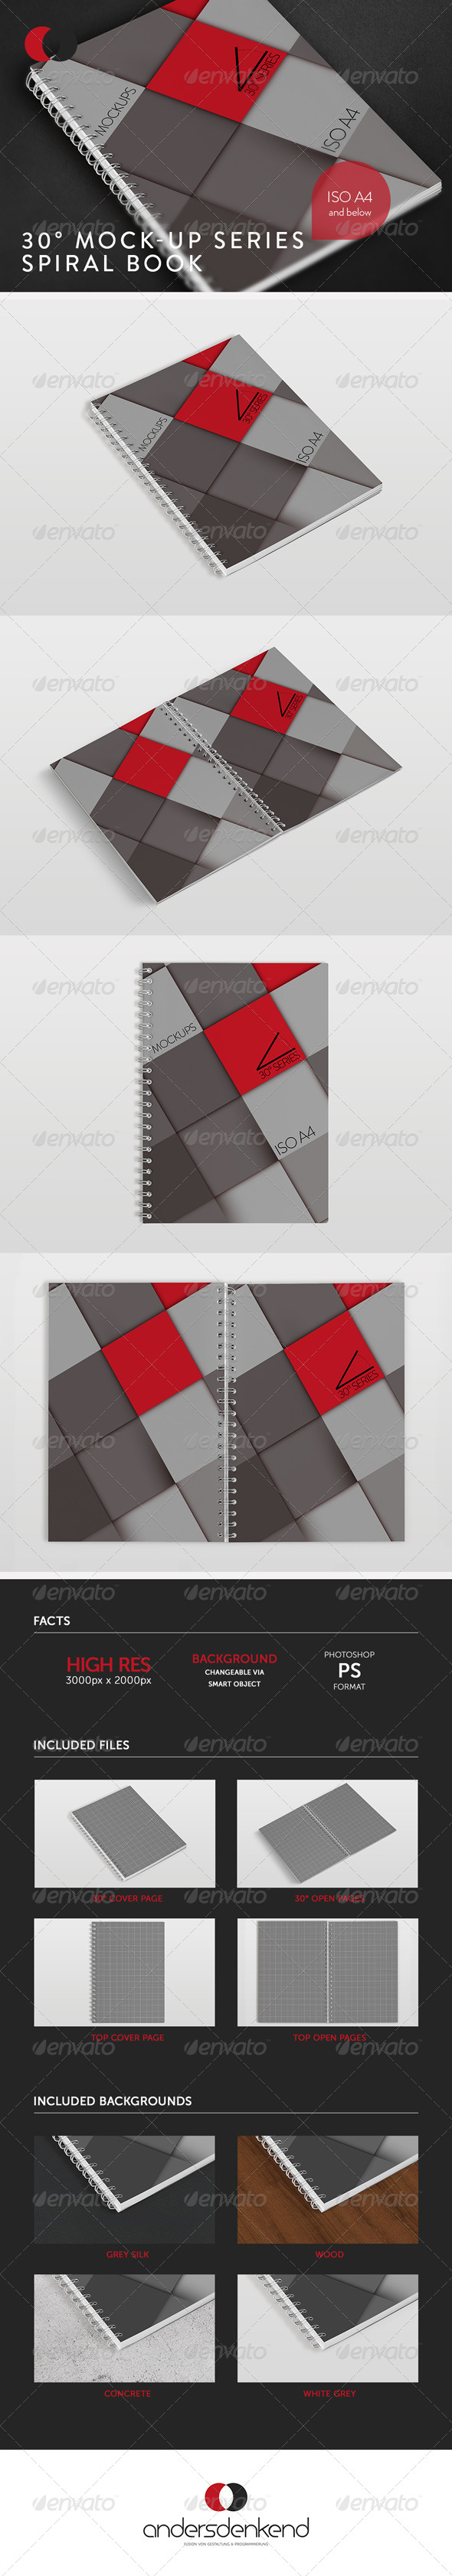 GraphicRiver Mock-Up 30Ўг Series Spiral Book 6141027